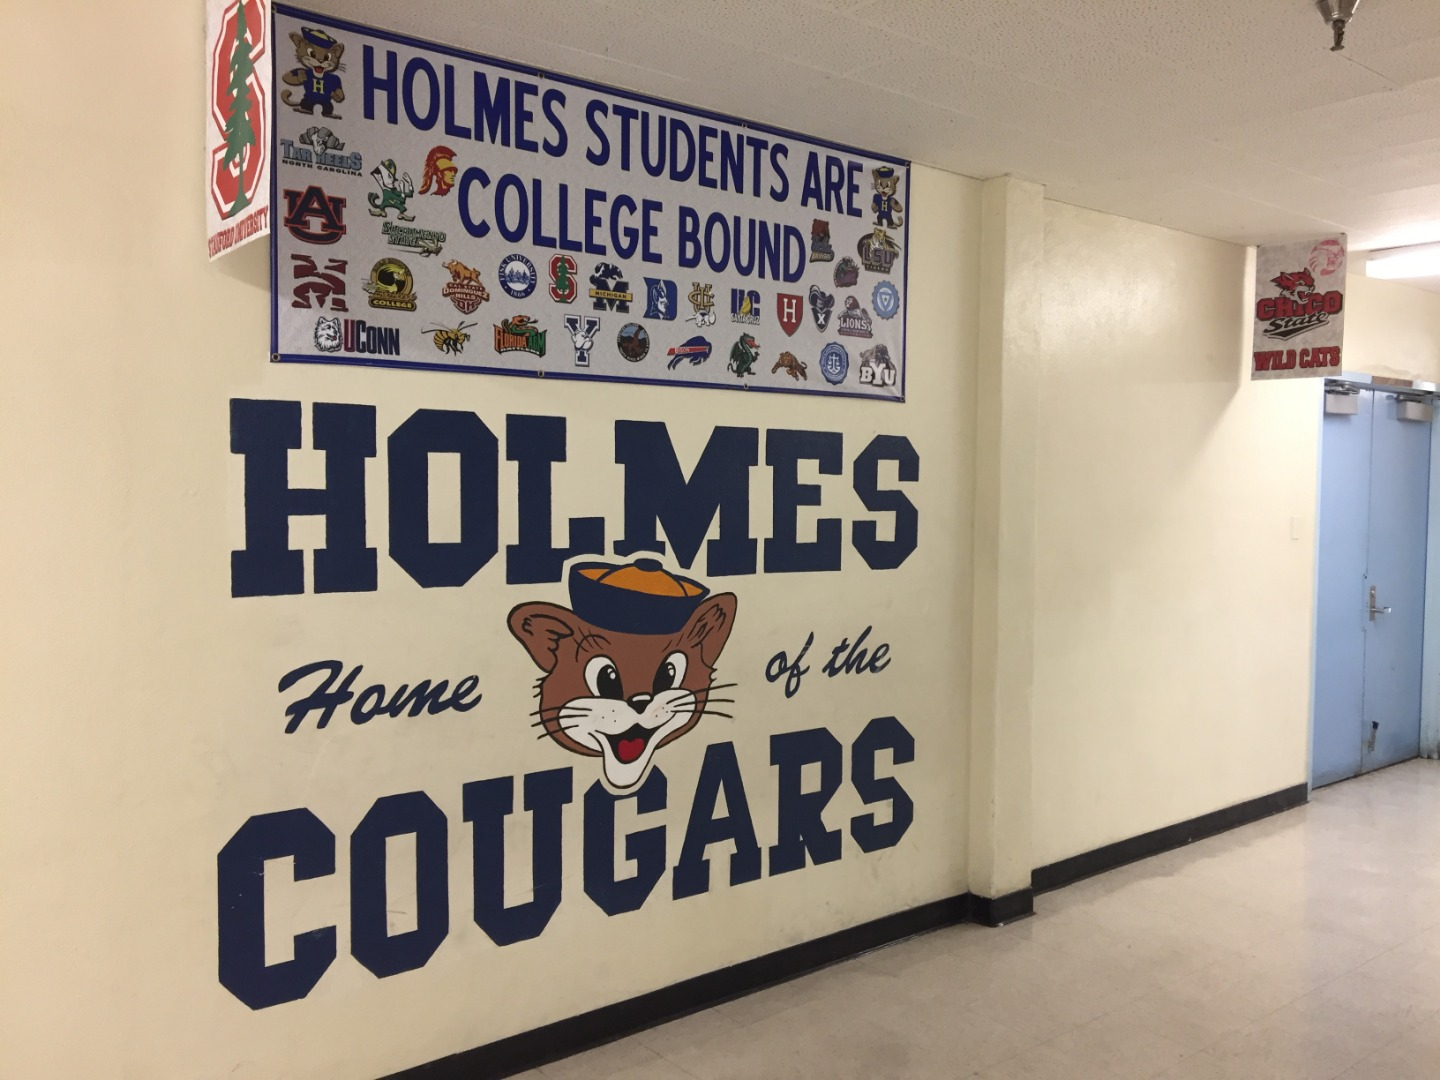 Welcome To Holmes Avenue!